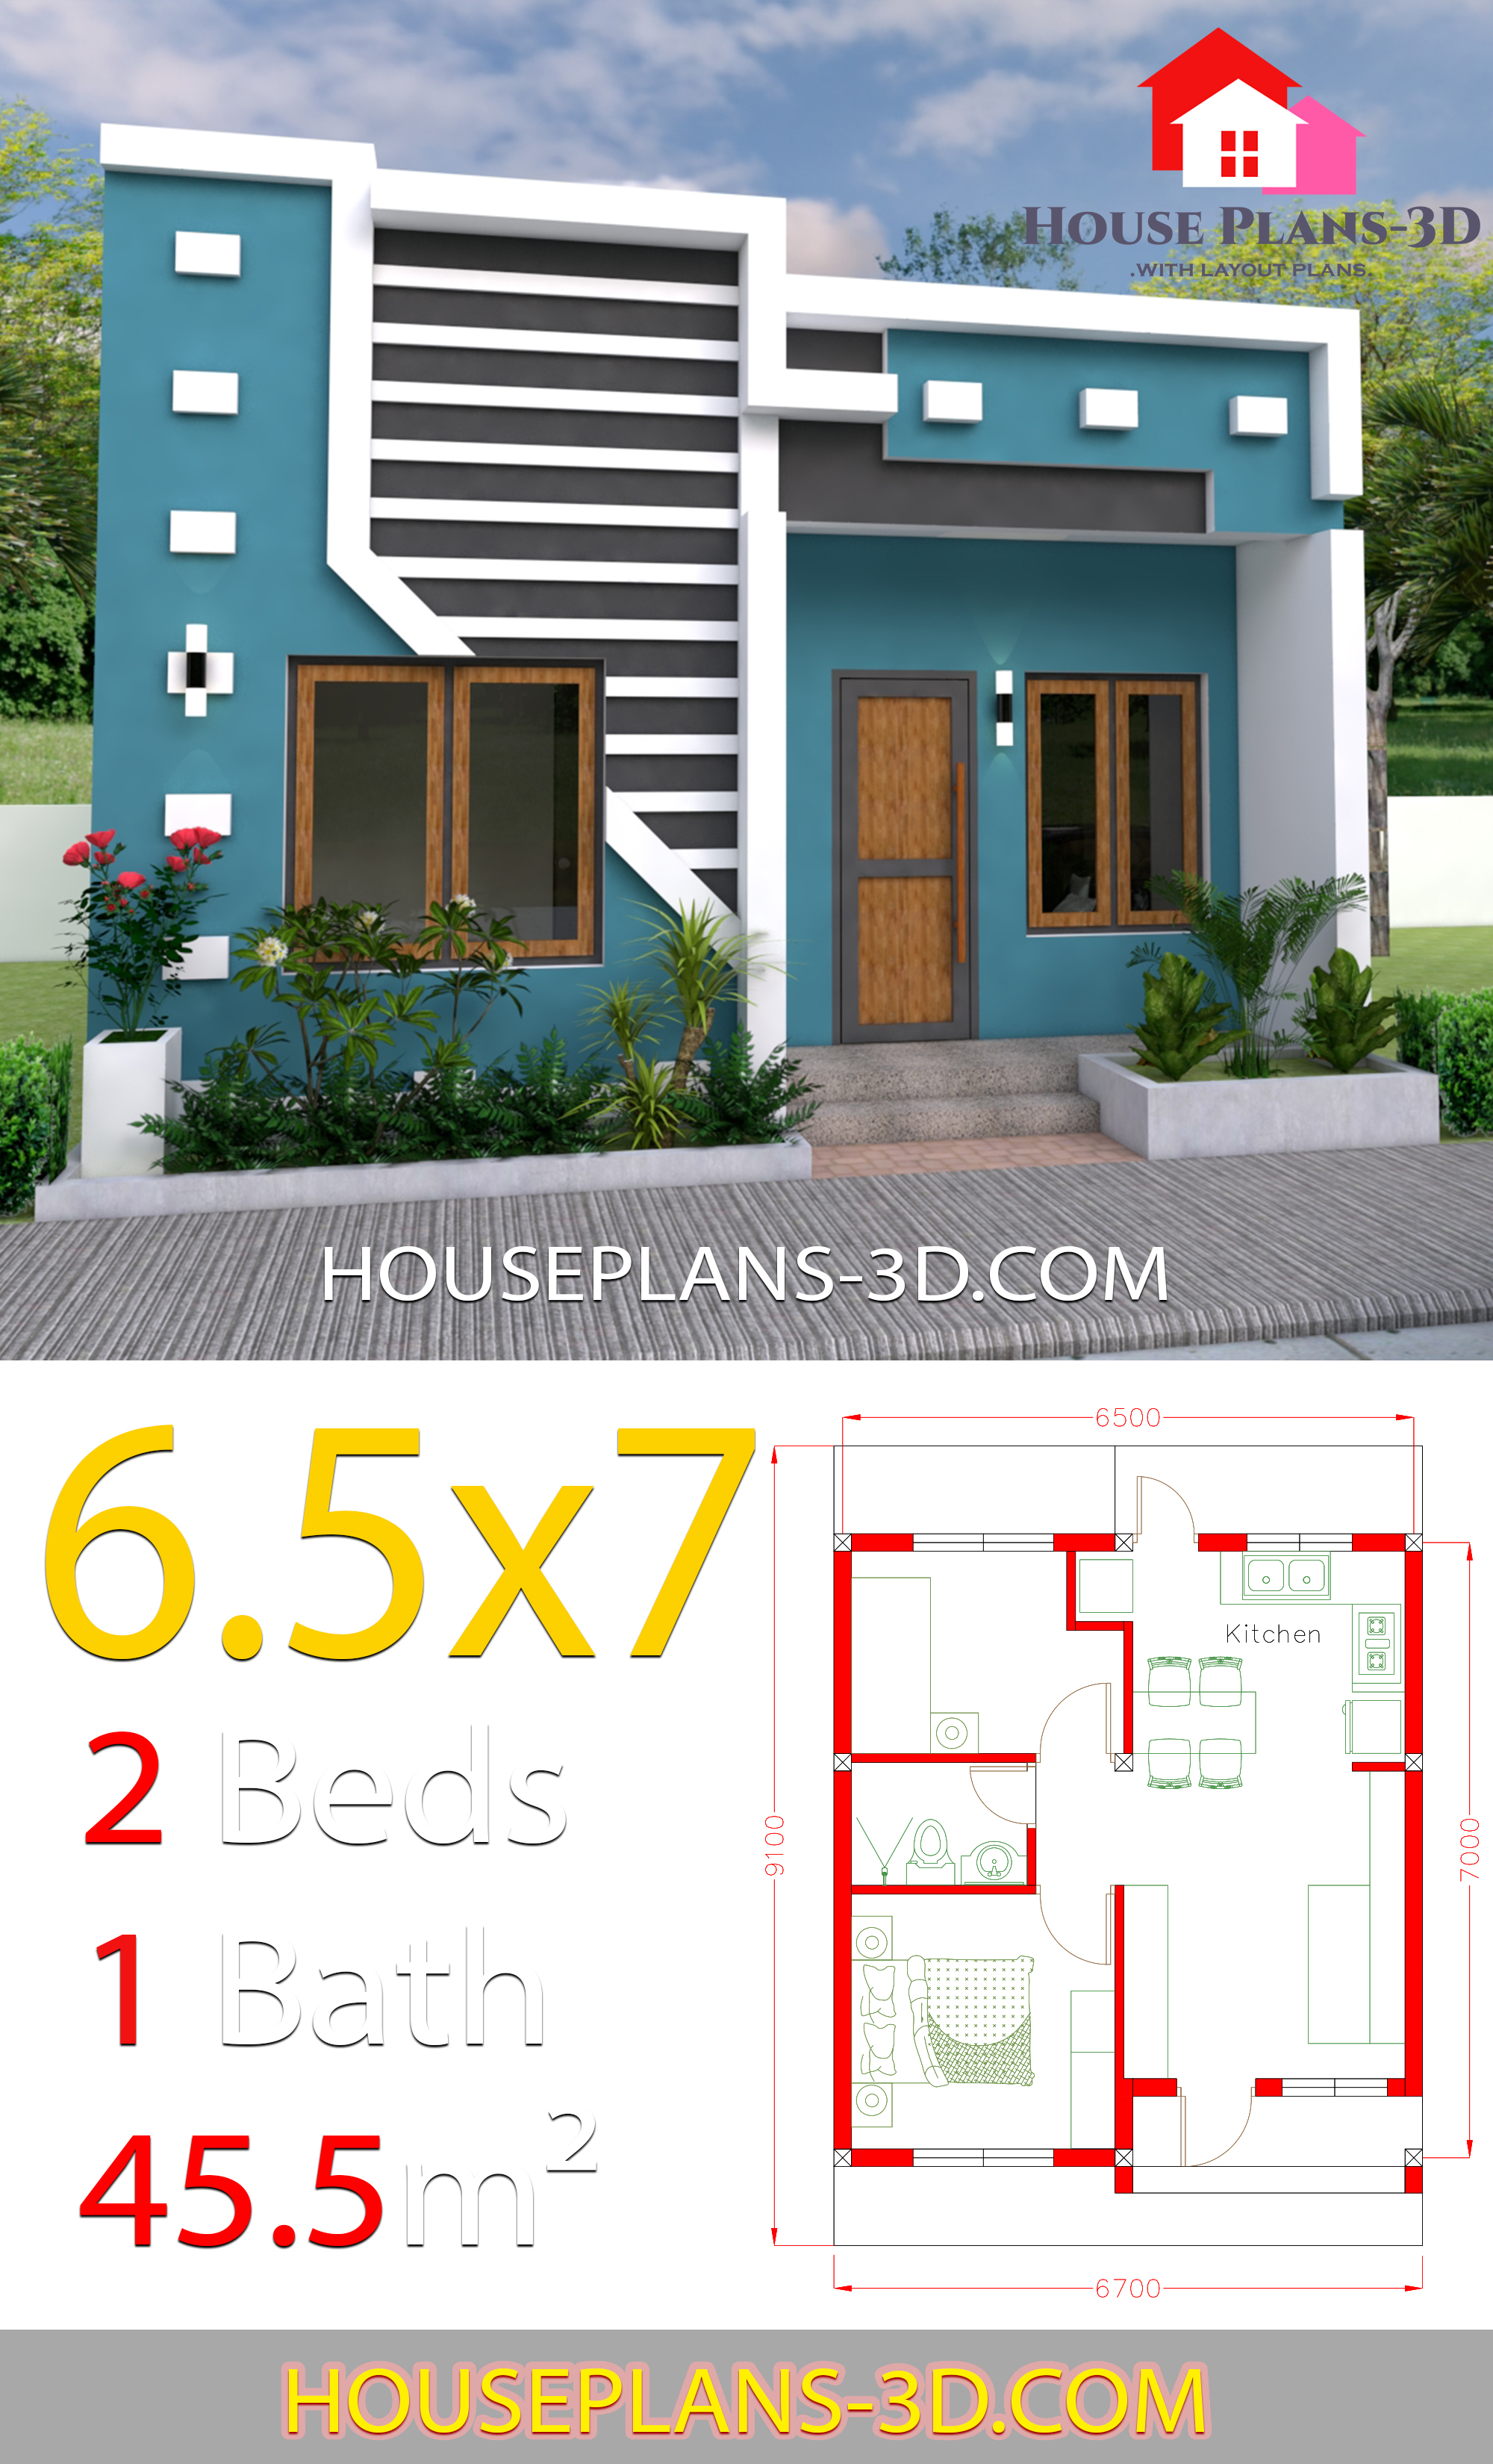 My 3d Room Design: Small House Design 6.5x7 With 2 Bedrooms Full Plans